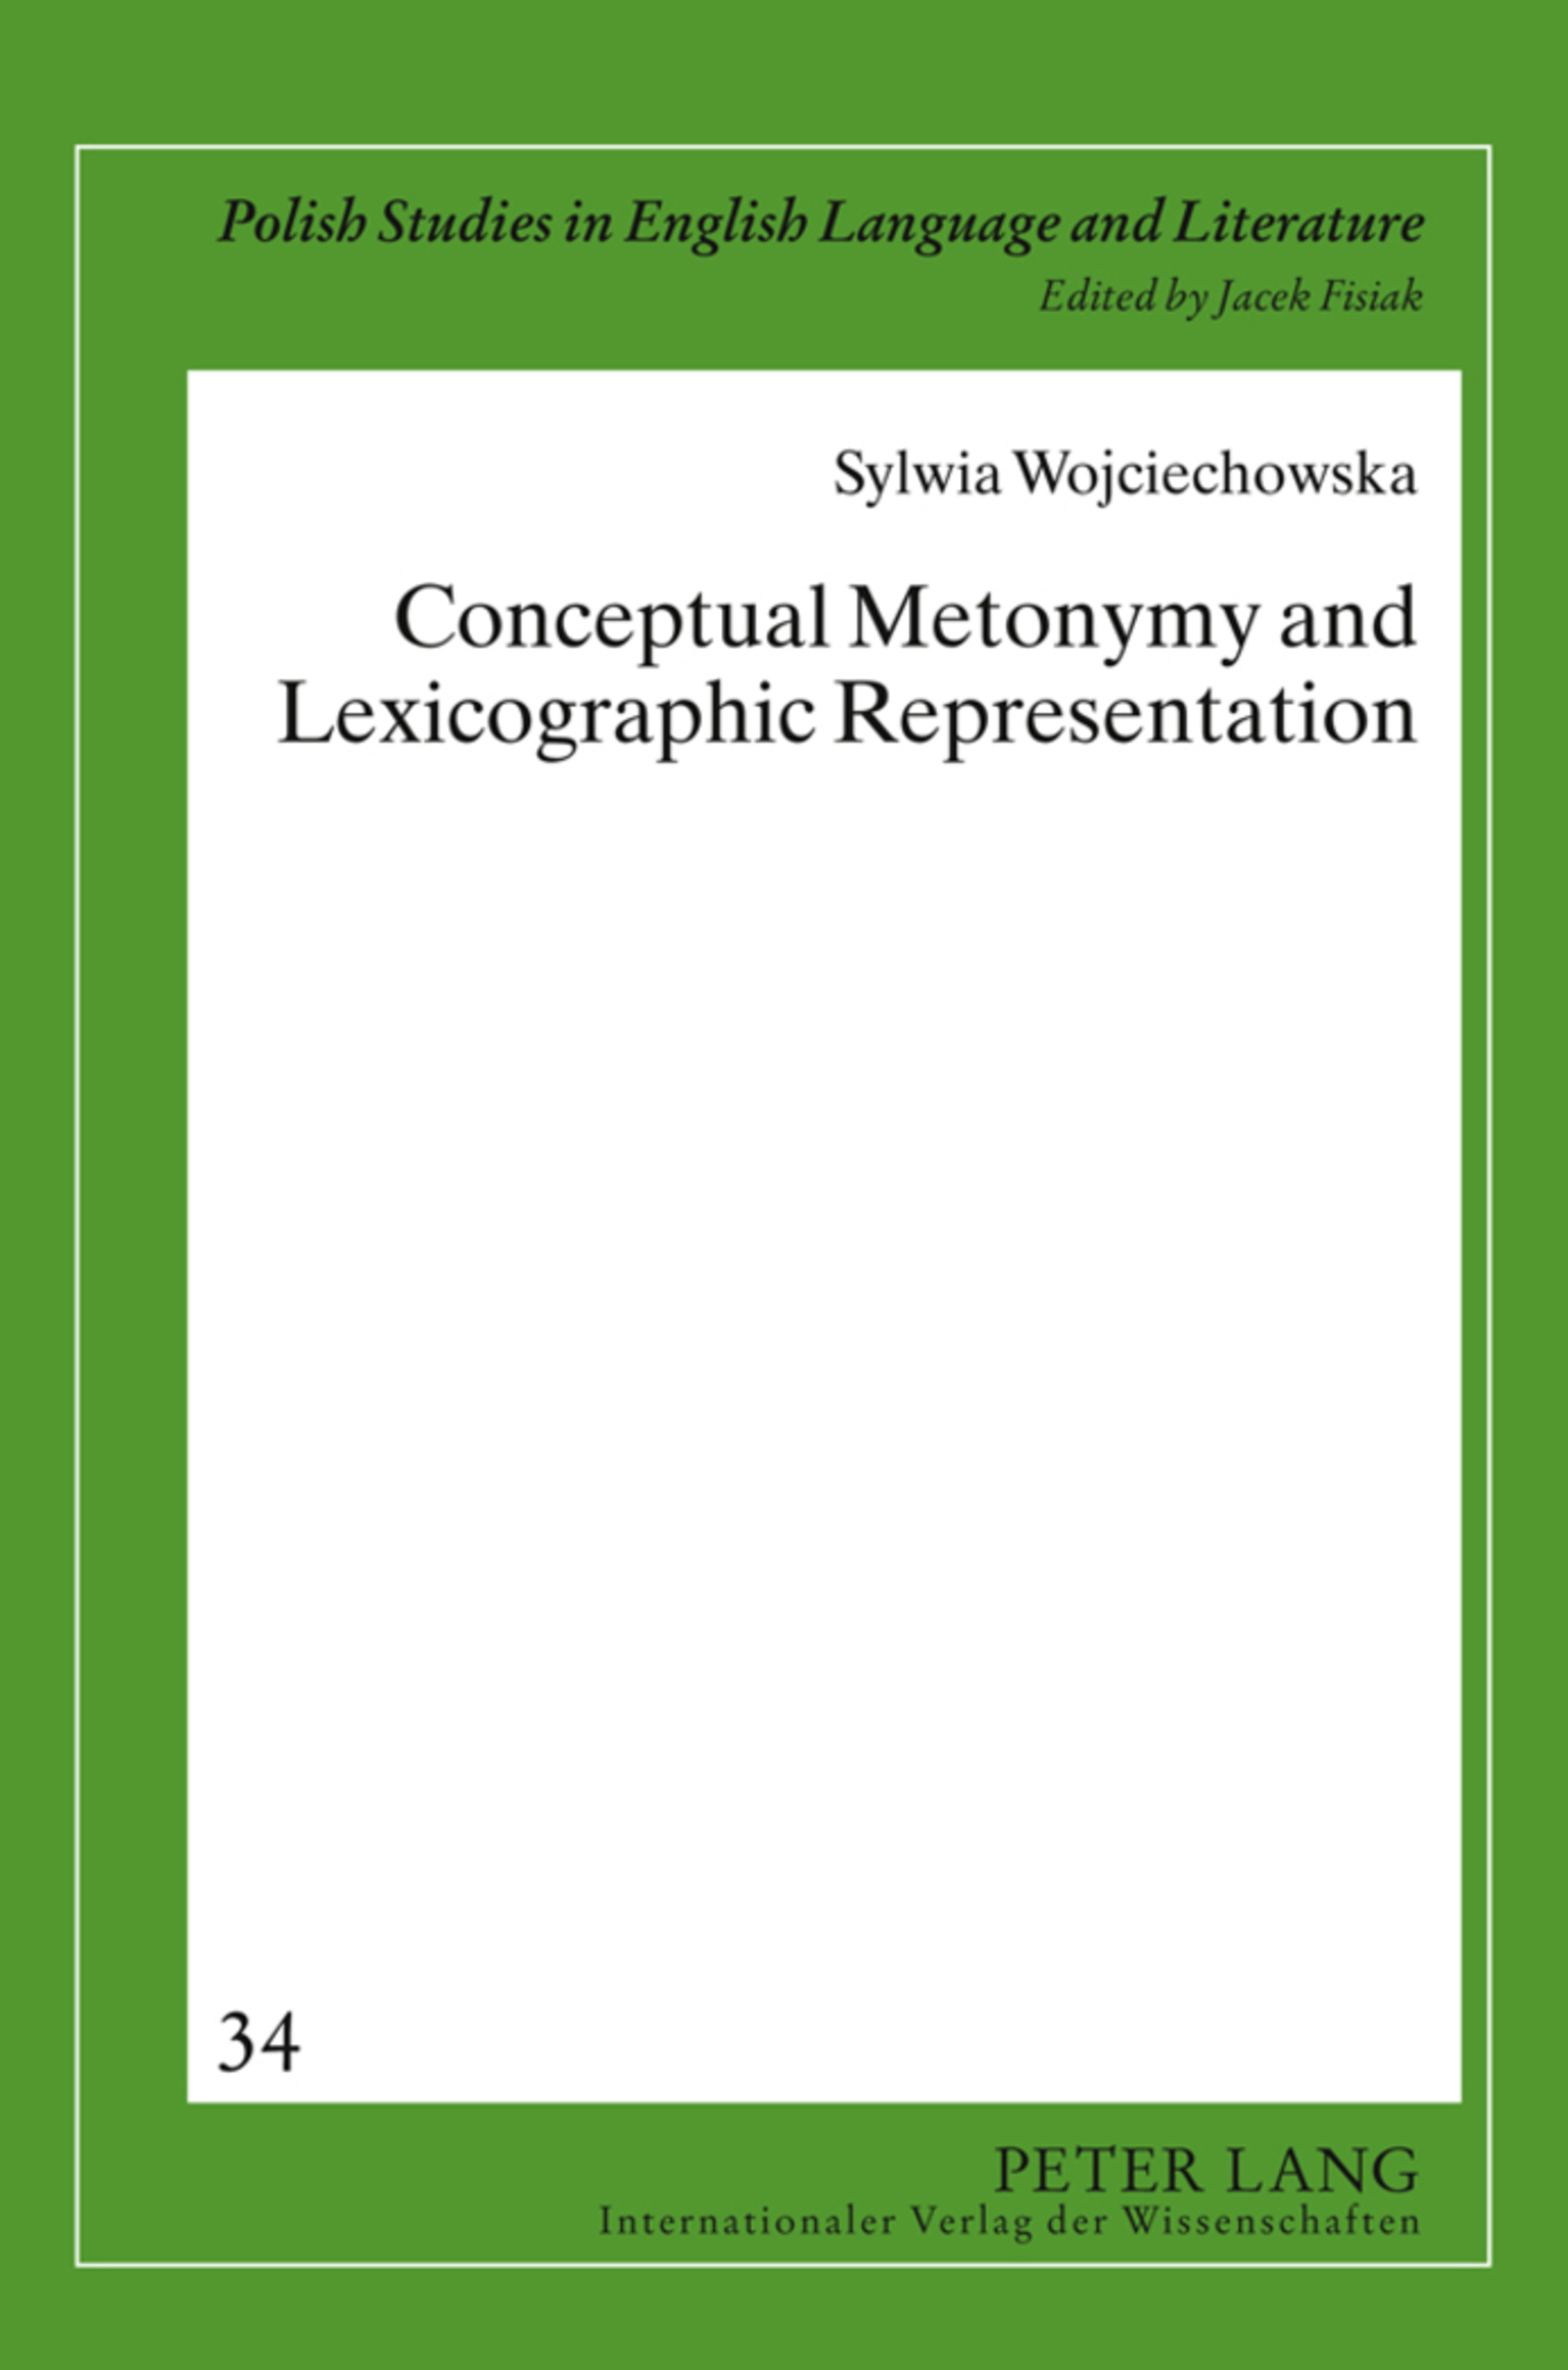 Title: Conceptual Metonymy and Lexicographic Representation